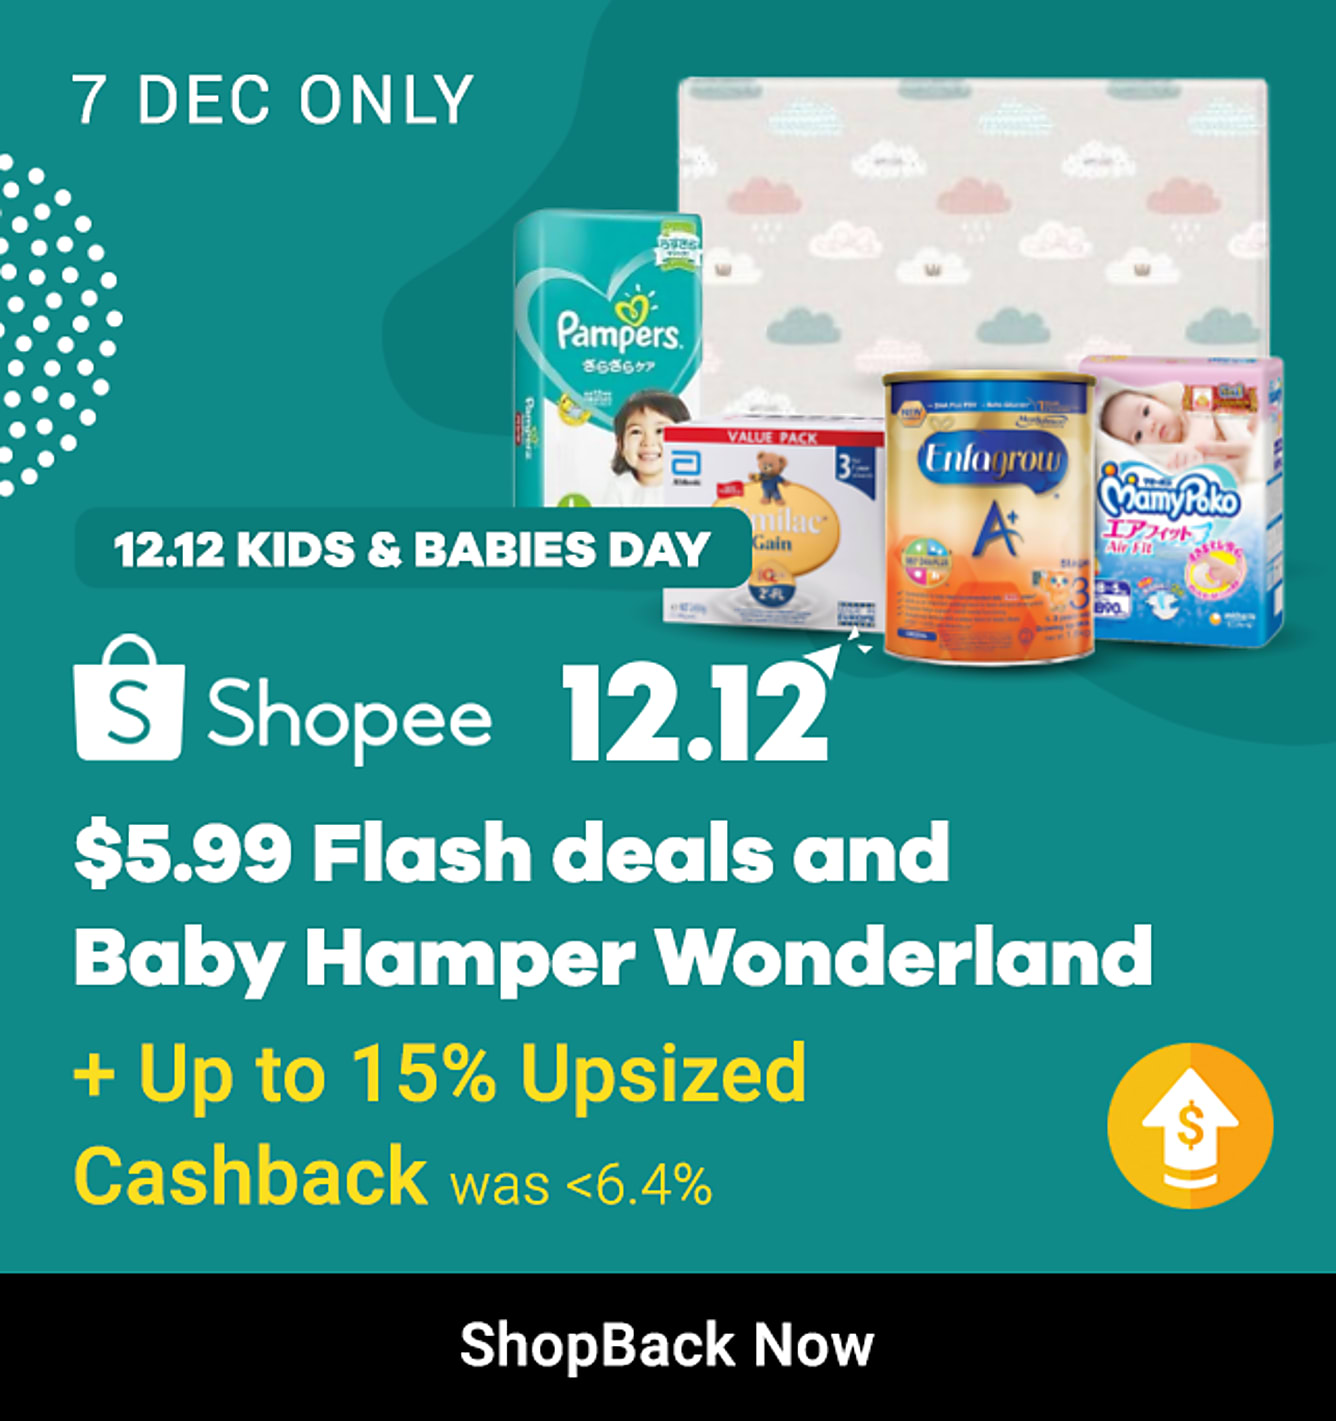 Shopee_12.12.2019_Onsite_7 Dec 2019